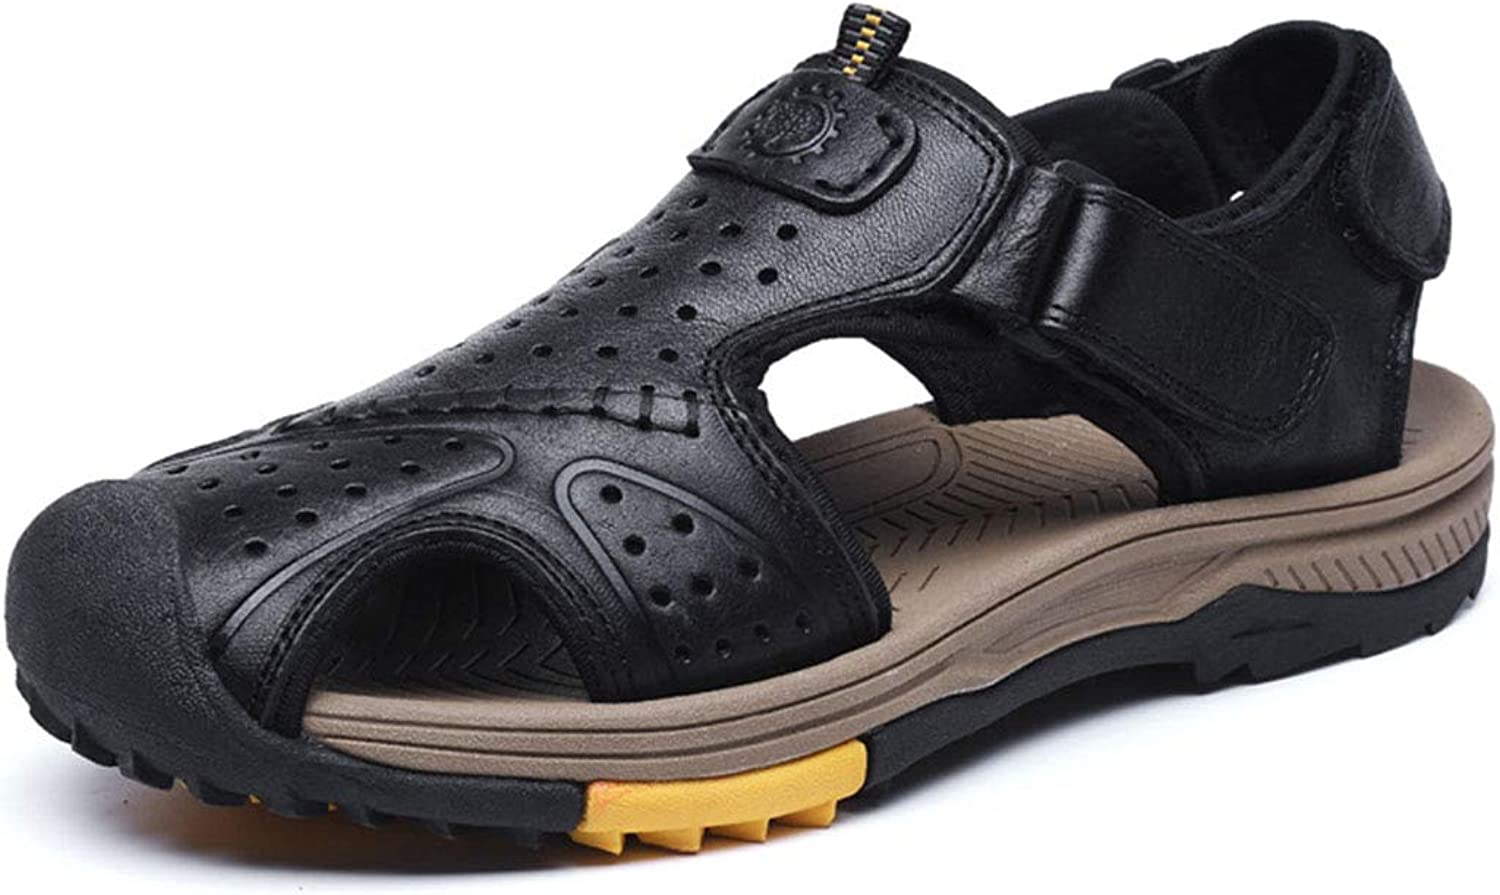 Mens Walking Sandals Leather Closed Toe Outdoor Sports Beach Sandal for Hiking Trekking Traveling Ankle Strap,Black,40